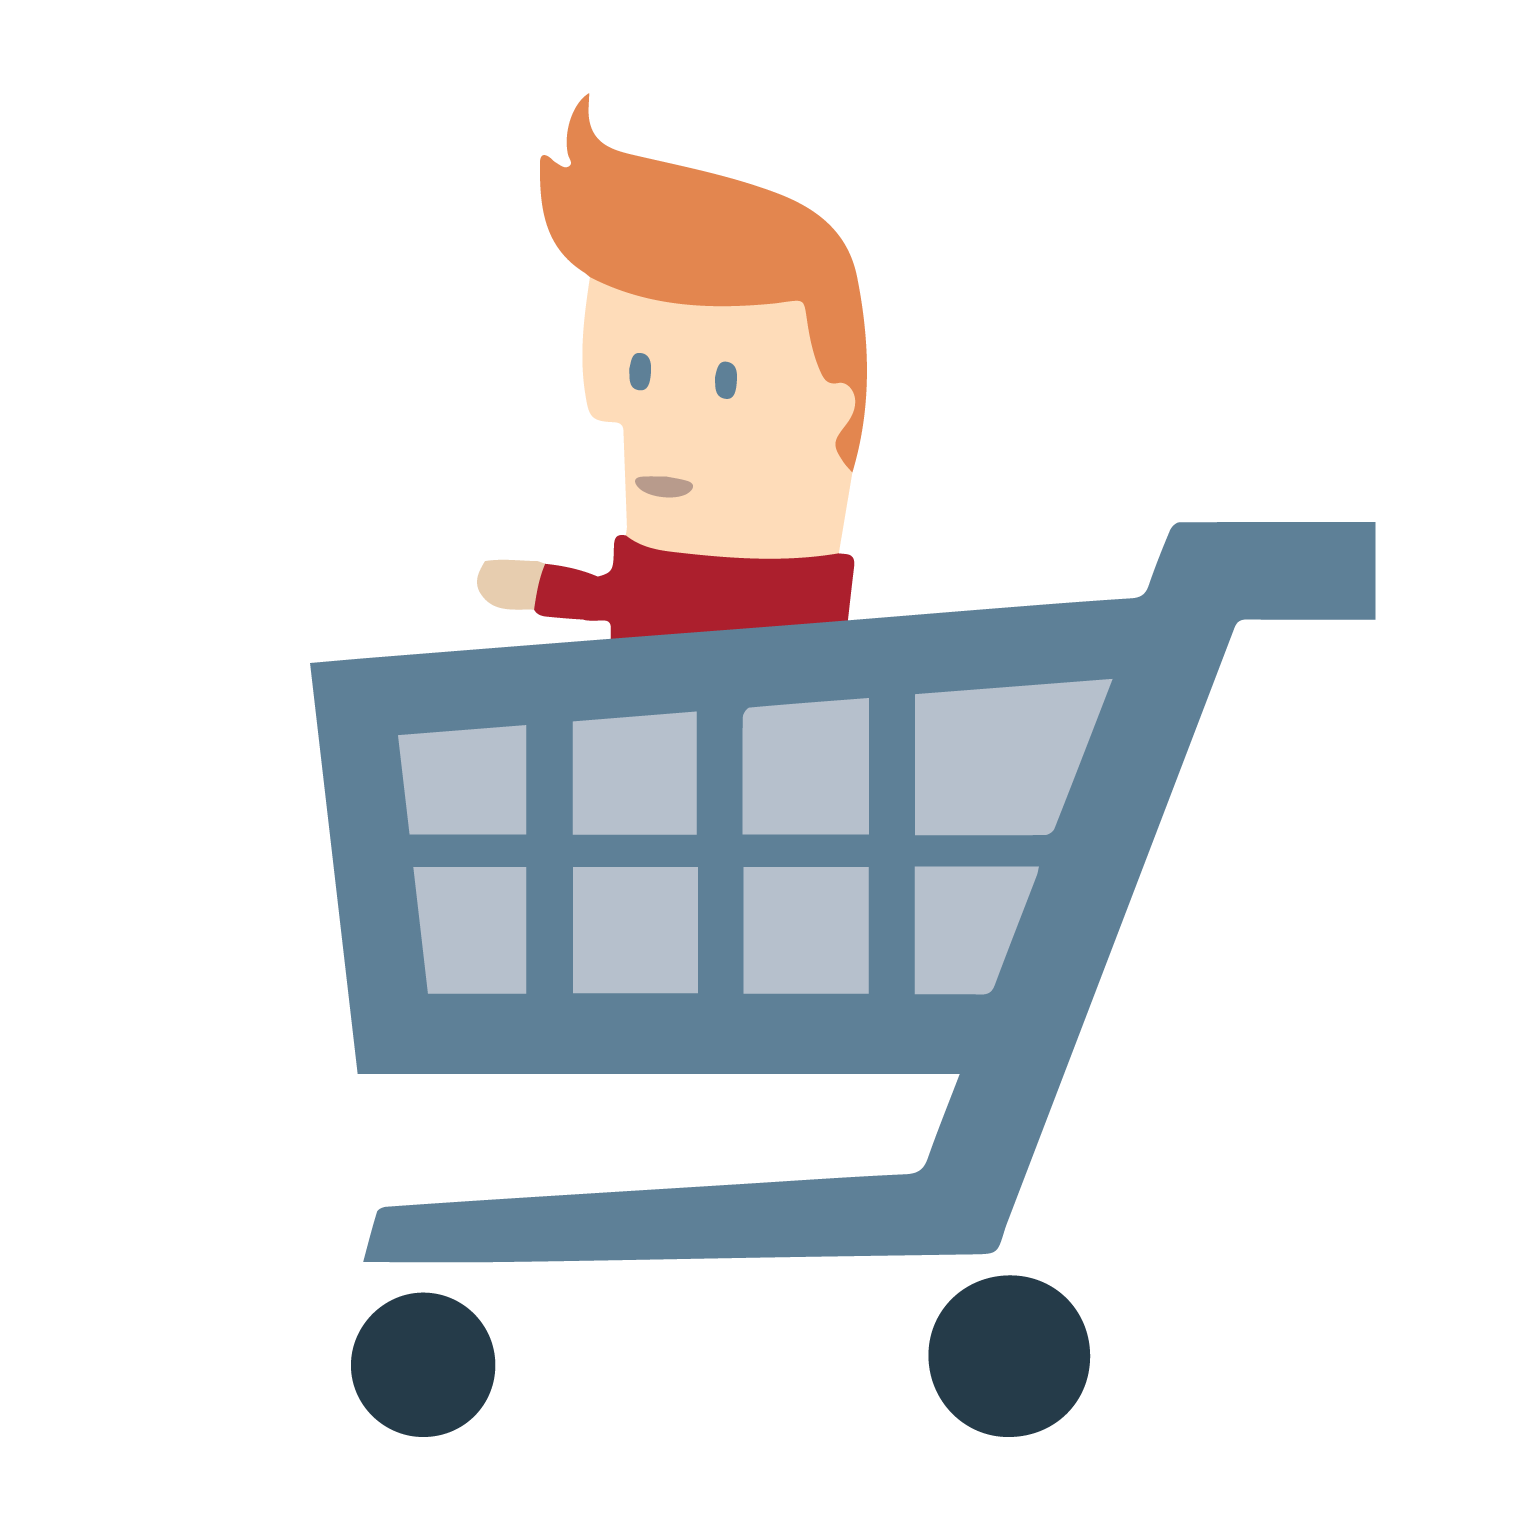 YOH_Illustration-shopping-cart-man_(1)